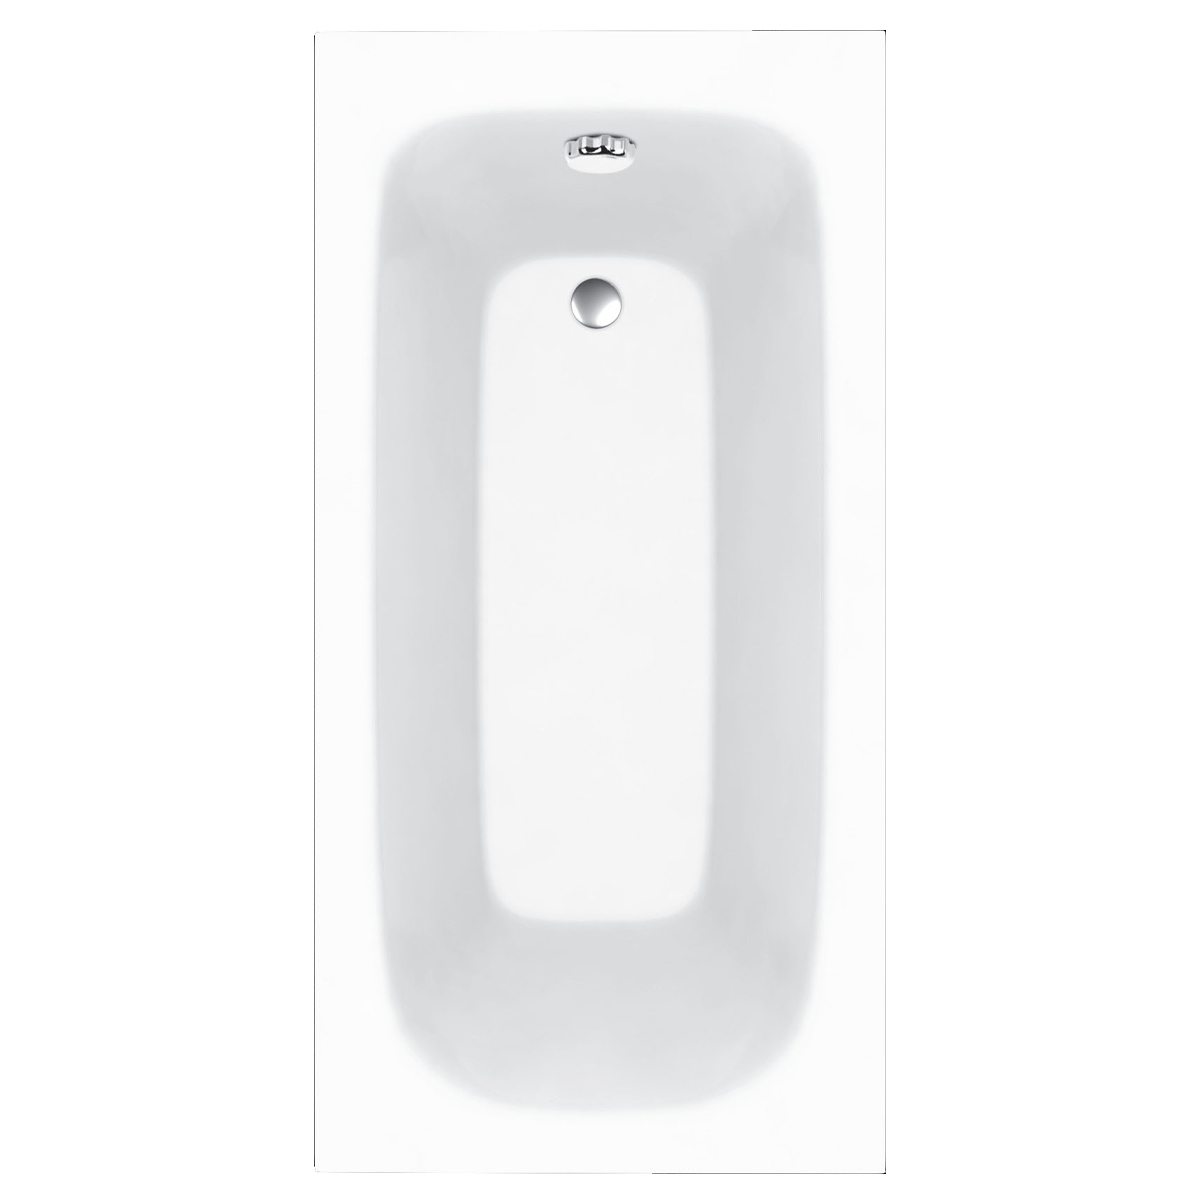 K-Vit G4K 1500 x 700 Contract Bath